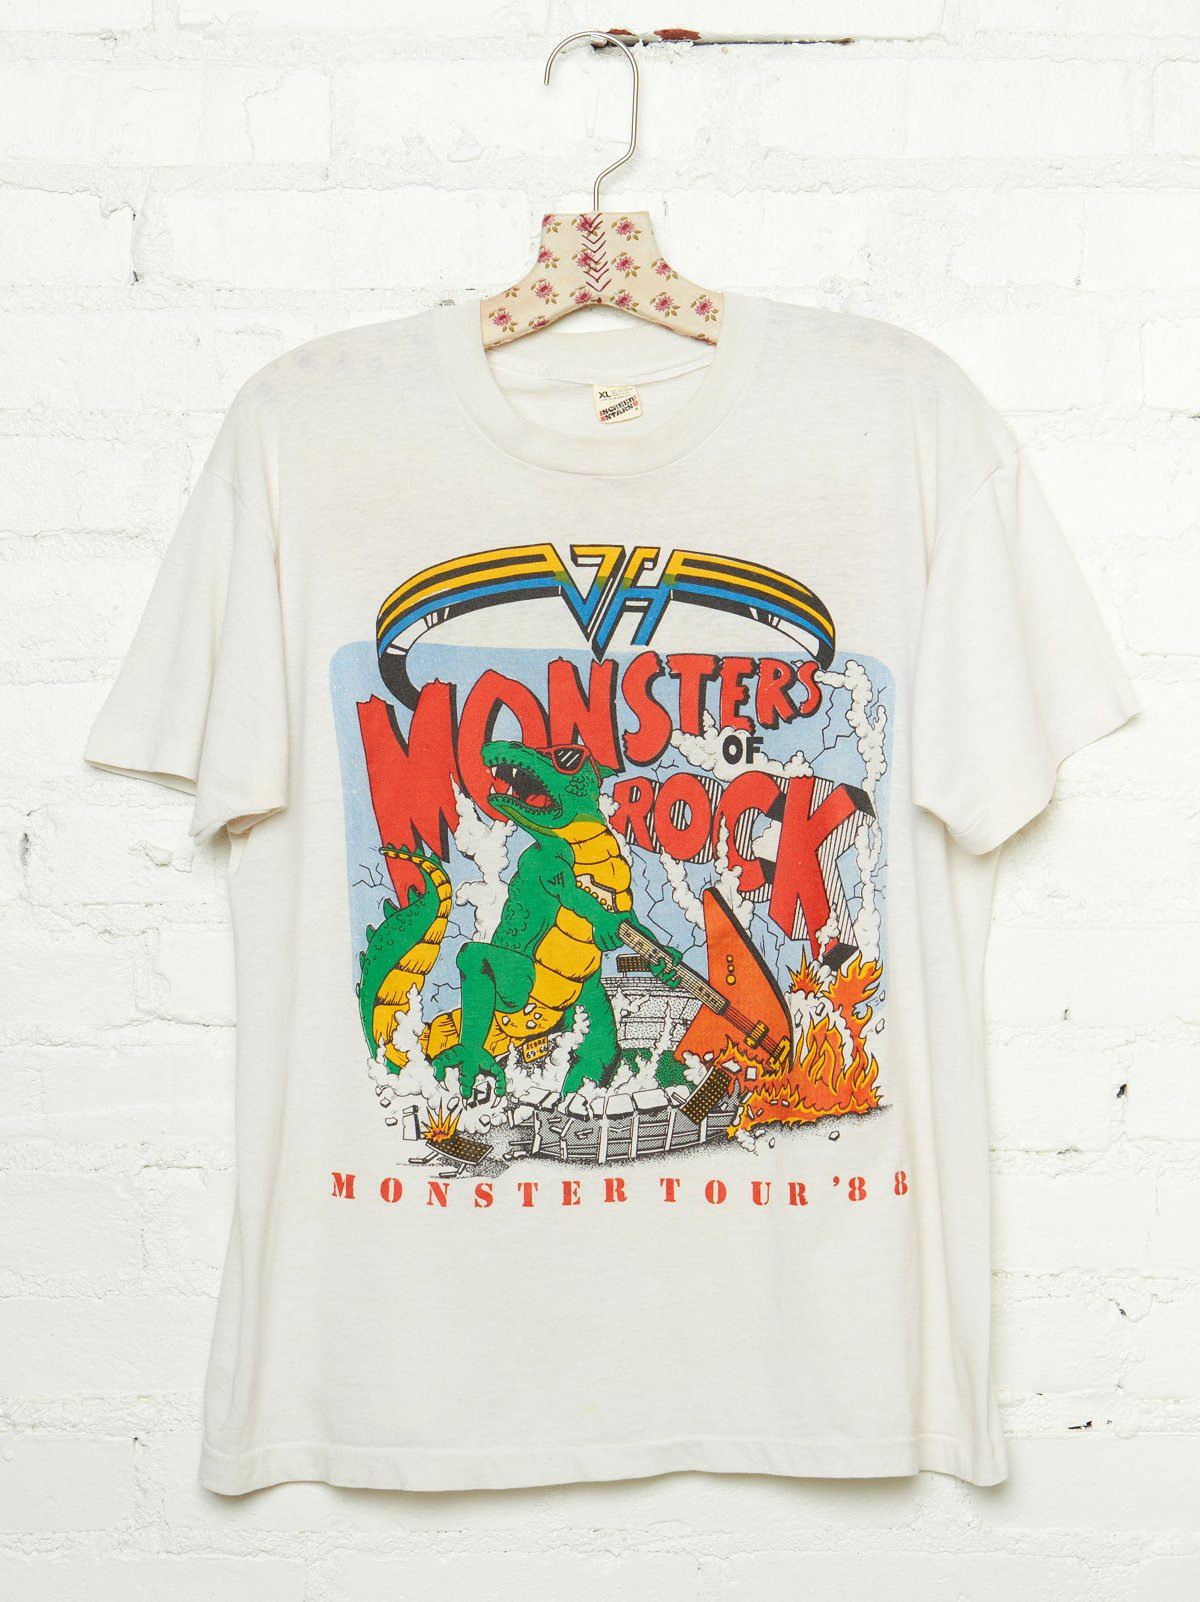 Vintage Monster of Rock Tour Tee